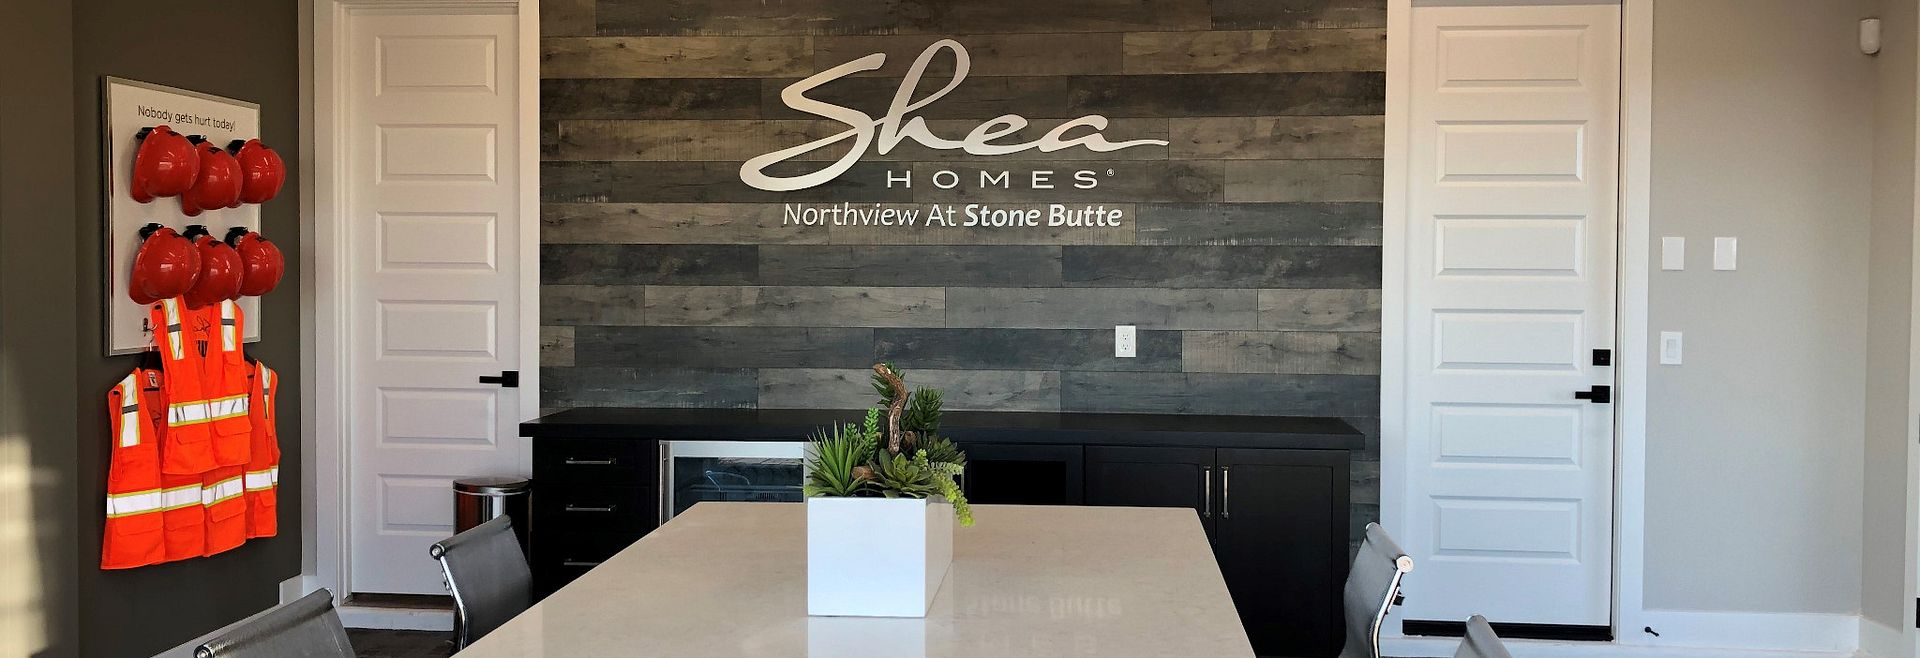 Interior of Northview at Stone Butte Sales Office